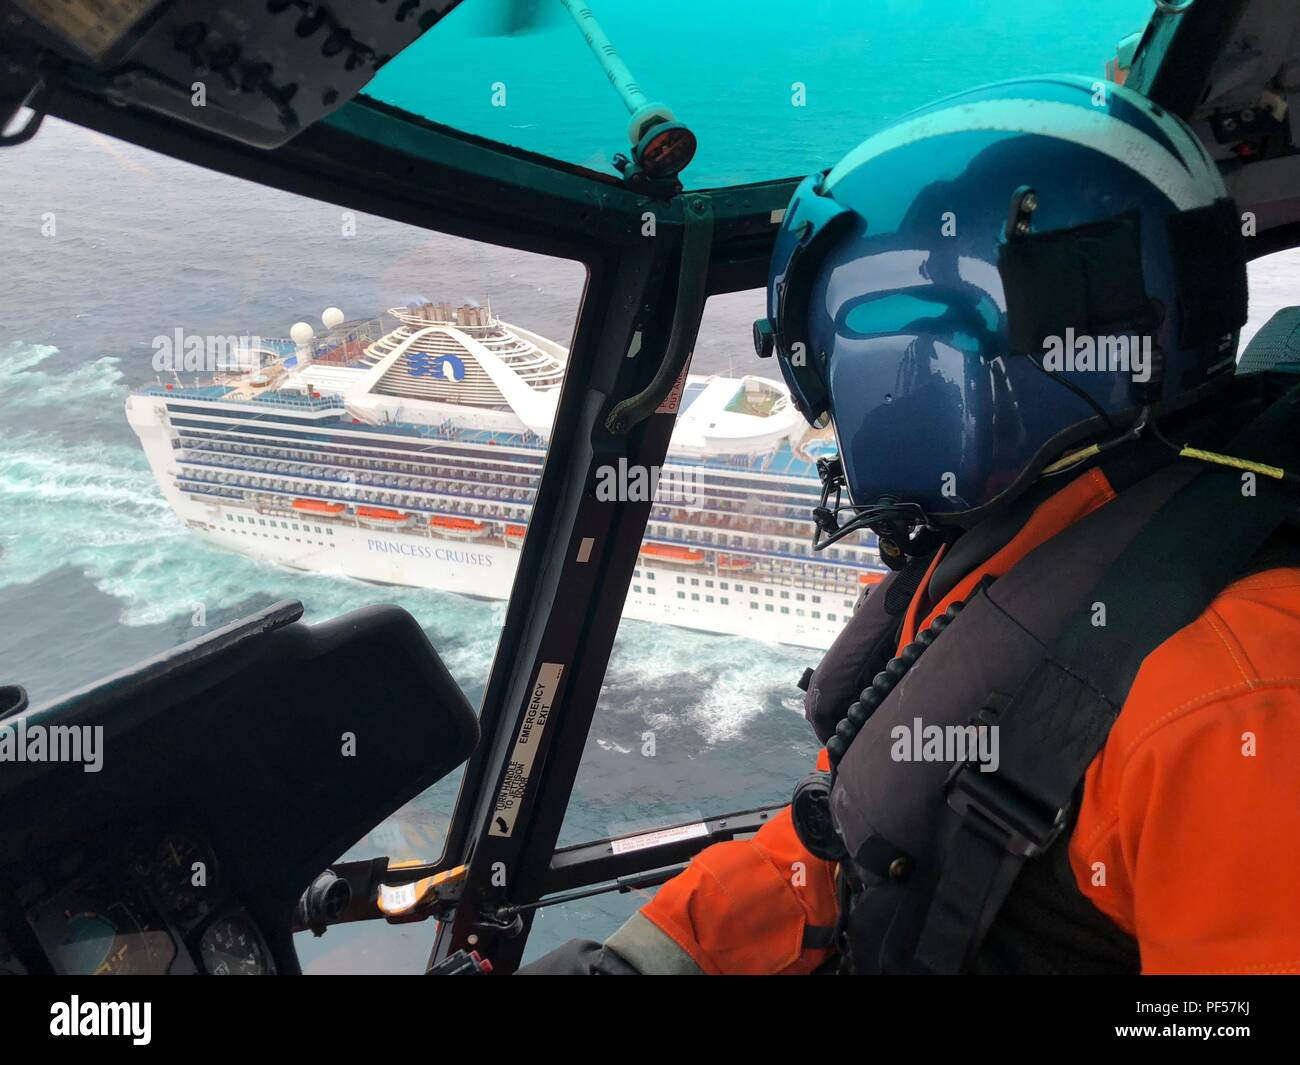 A Coast Guard Sector North Bend aircrew medically evacuated a woman reportedly suffering from kidney failure while aboard a cruise ship 50 miles southwest of Coos Bay, Aug. 13, 2018. The aircrew arrived on scene aboard an MH-65 Dolphin helicopter crew, medevac'd the woman from the ship named Grand Princess and safely transported her to the Bay Area Hospital at 12:50 p.m. U.S. Coast Guard video. - Stock Image